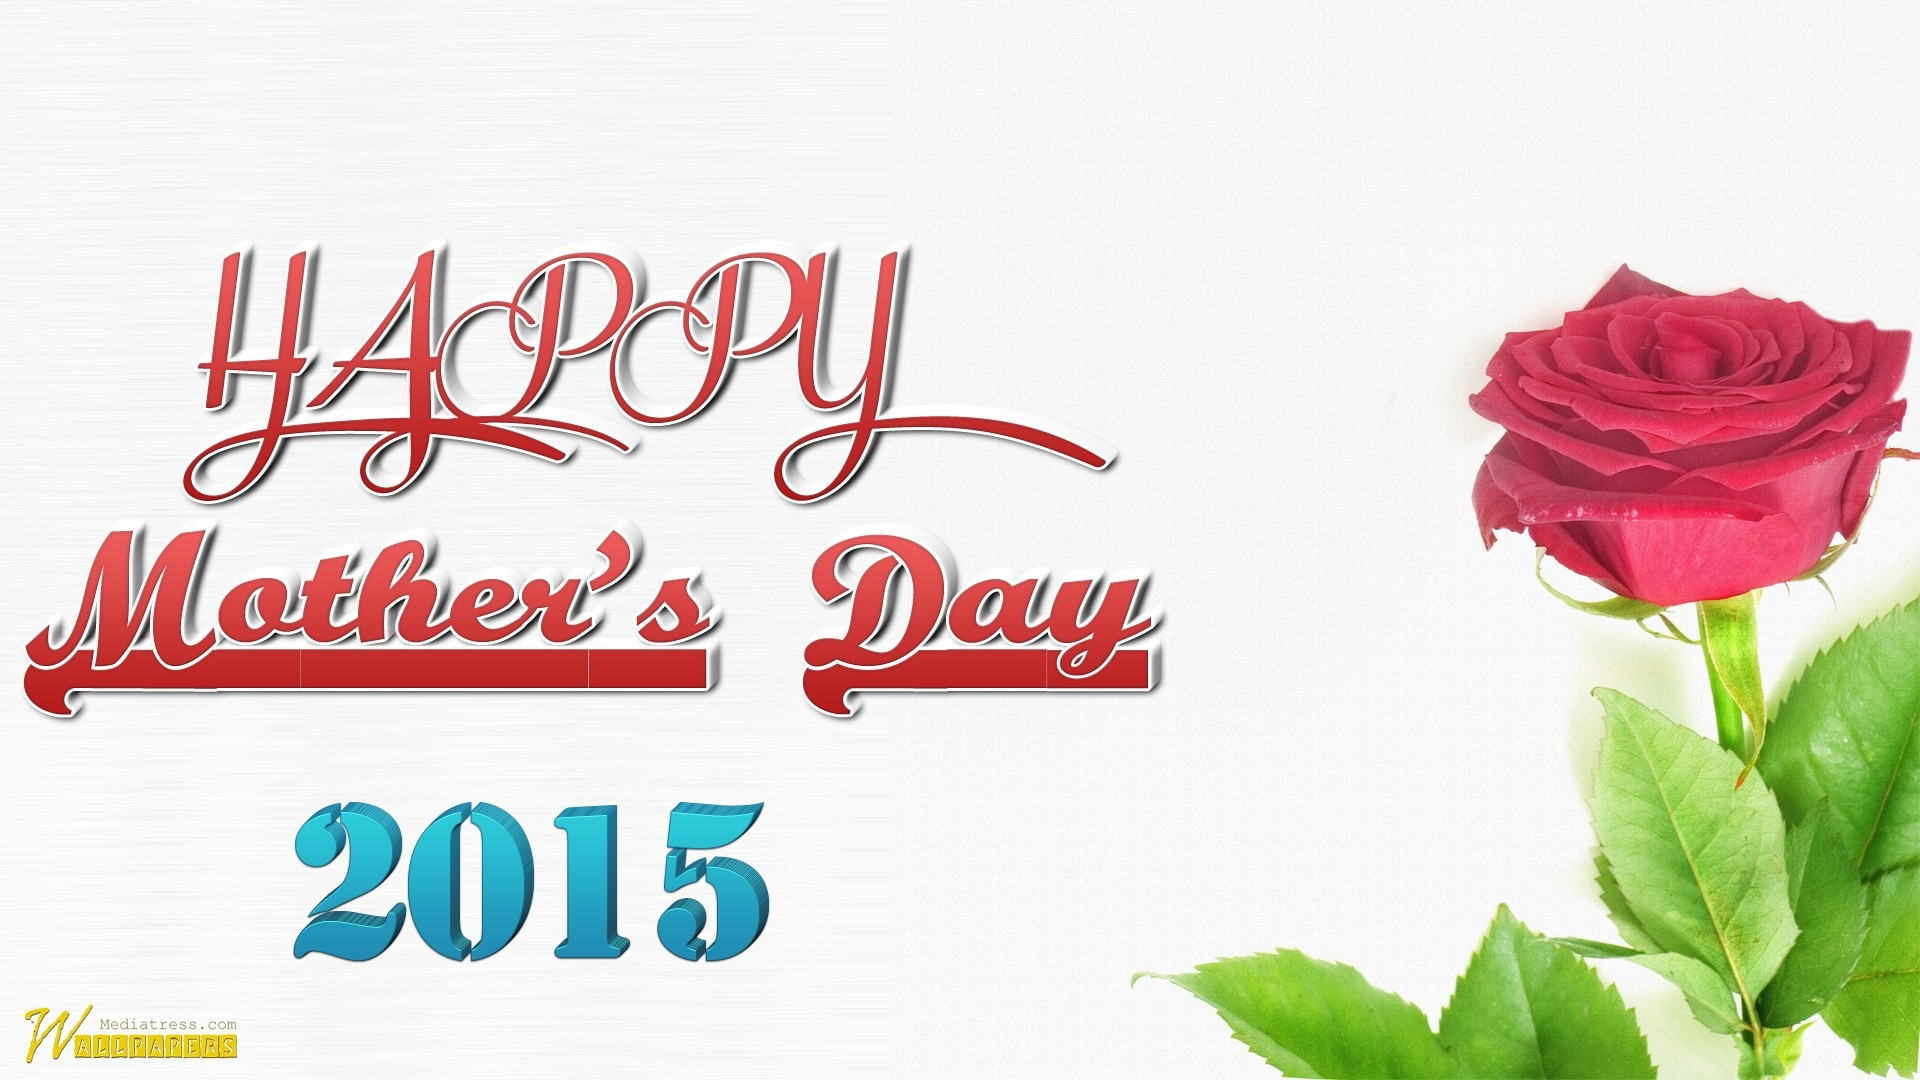 2015-Happy-Mothers-Day-Wallpaper